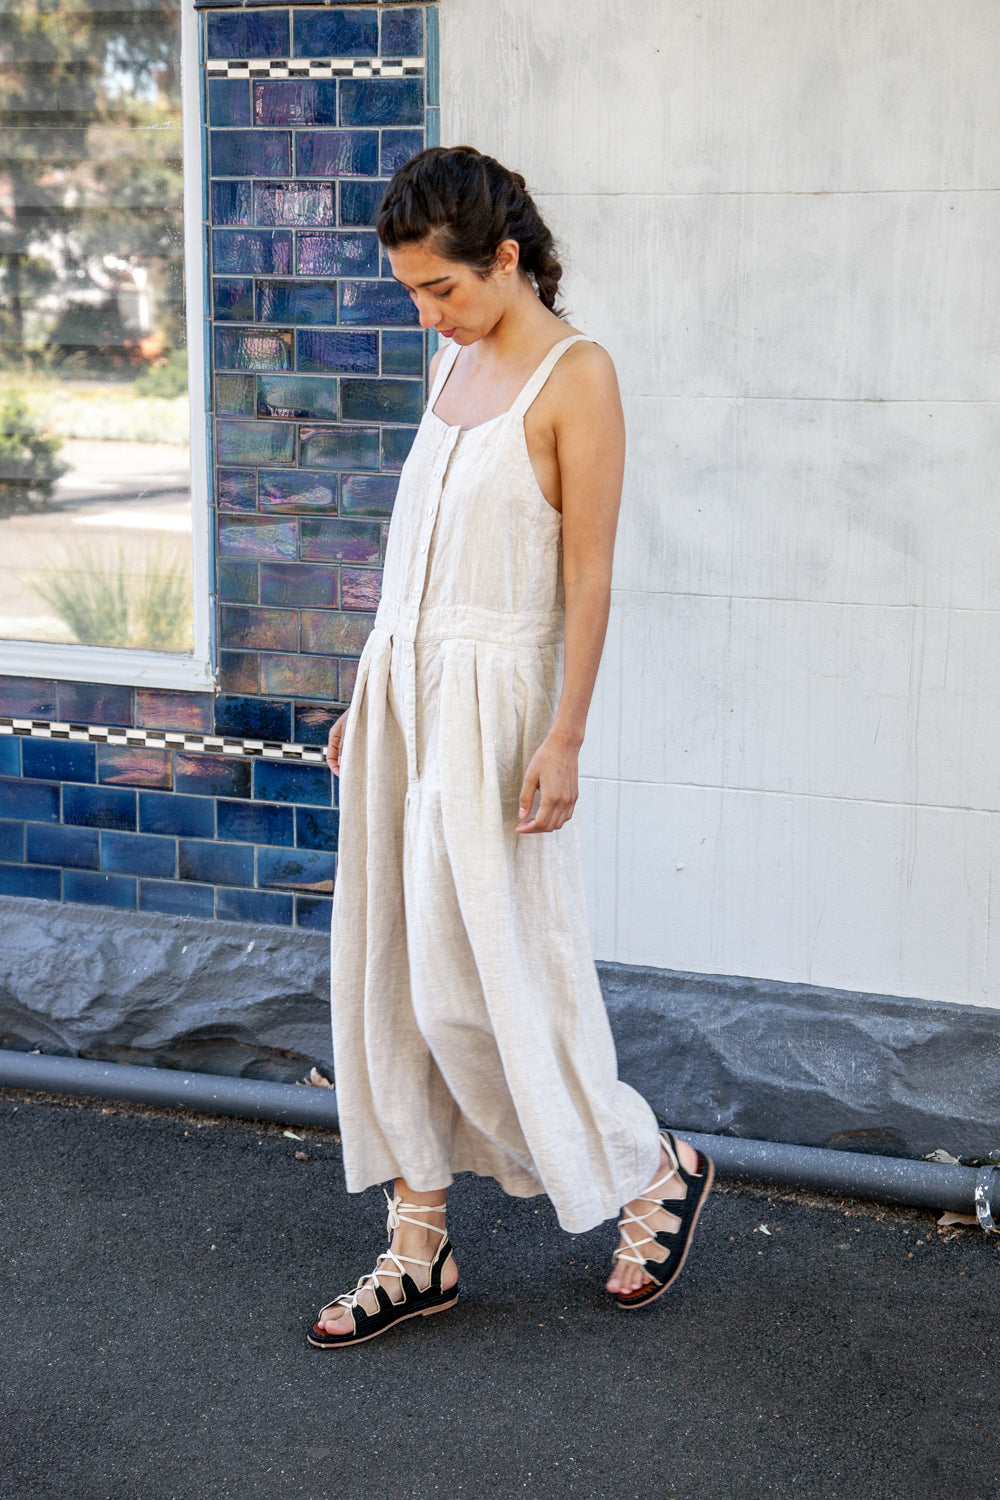 Blair Jumpsuit - Mid Weight Linen